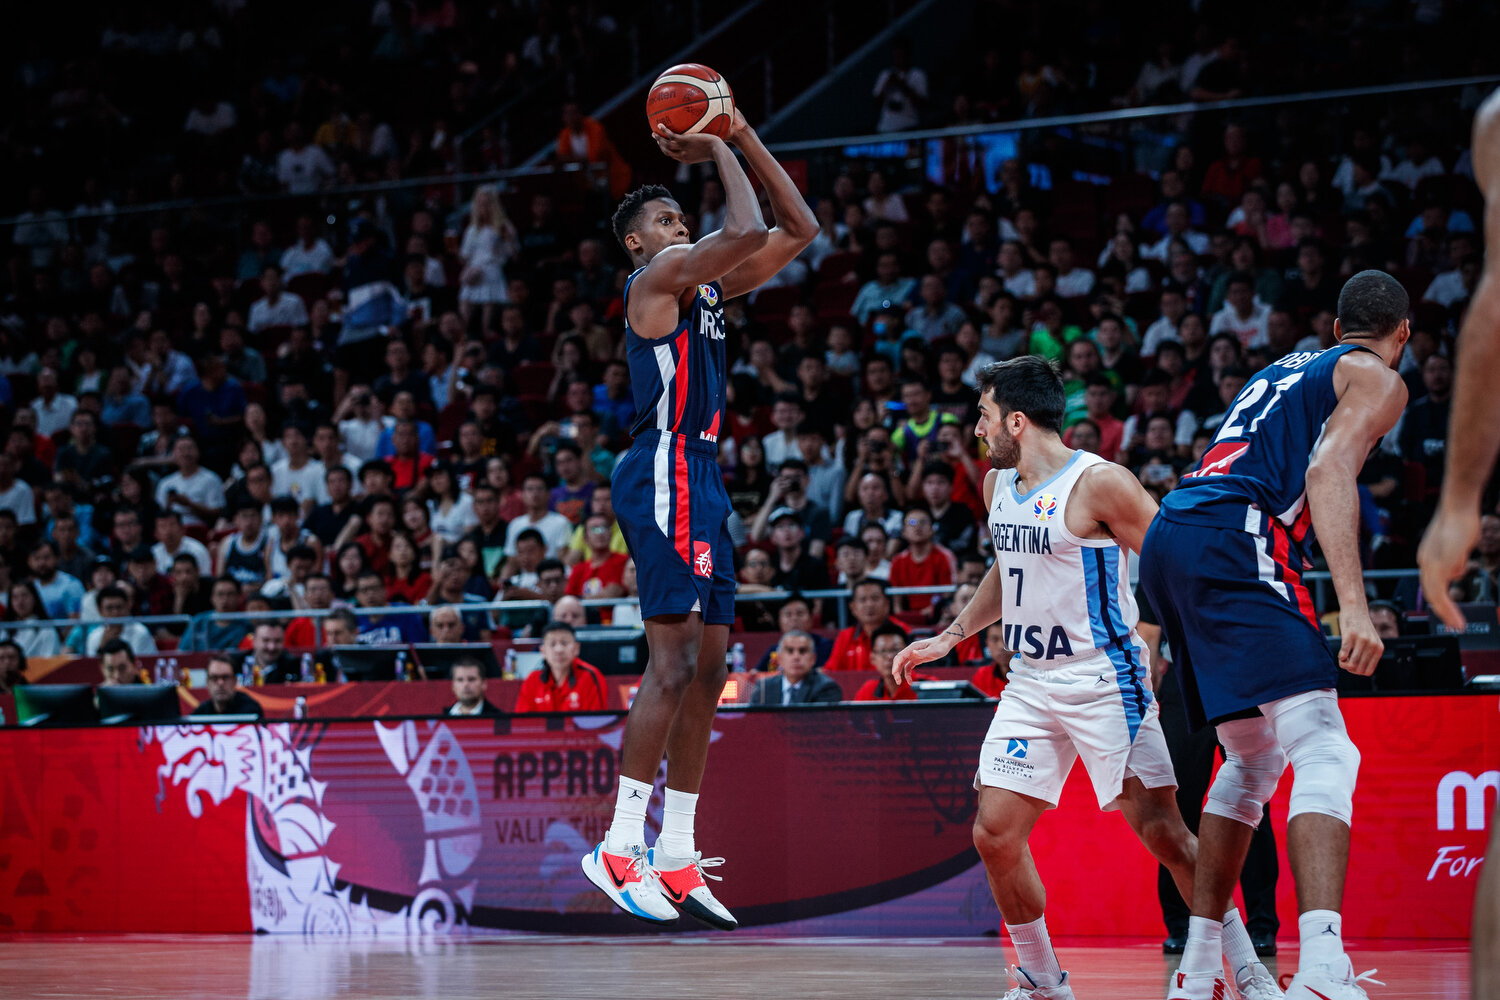 Frank Ntilikina of France and the New York Knicks pulls up for a jumper against Argentina during the semi-finals of the FIBA Basketball World Cup in Beijing, China. All rights reserved (Mandatory photo credit: Jon Lopez / FIBA )